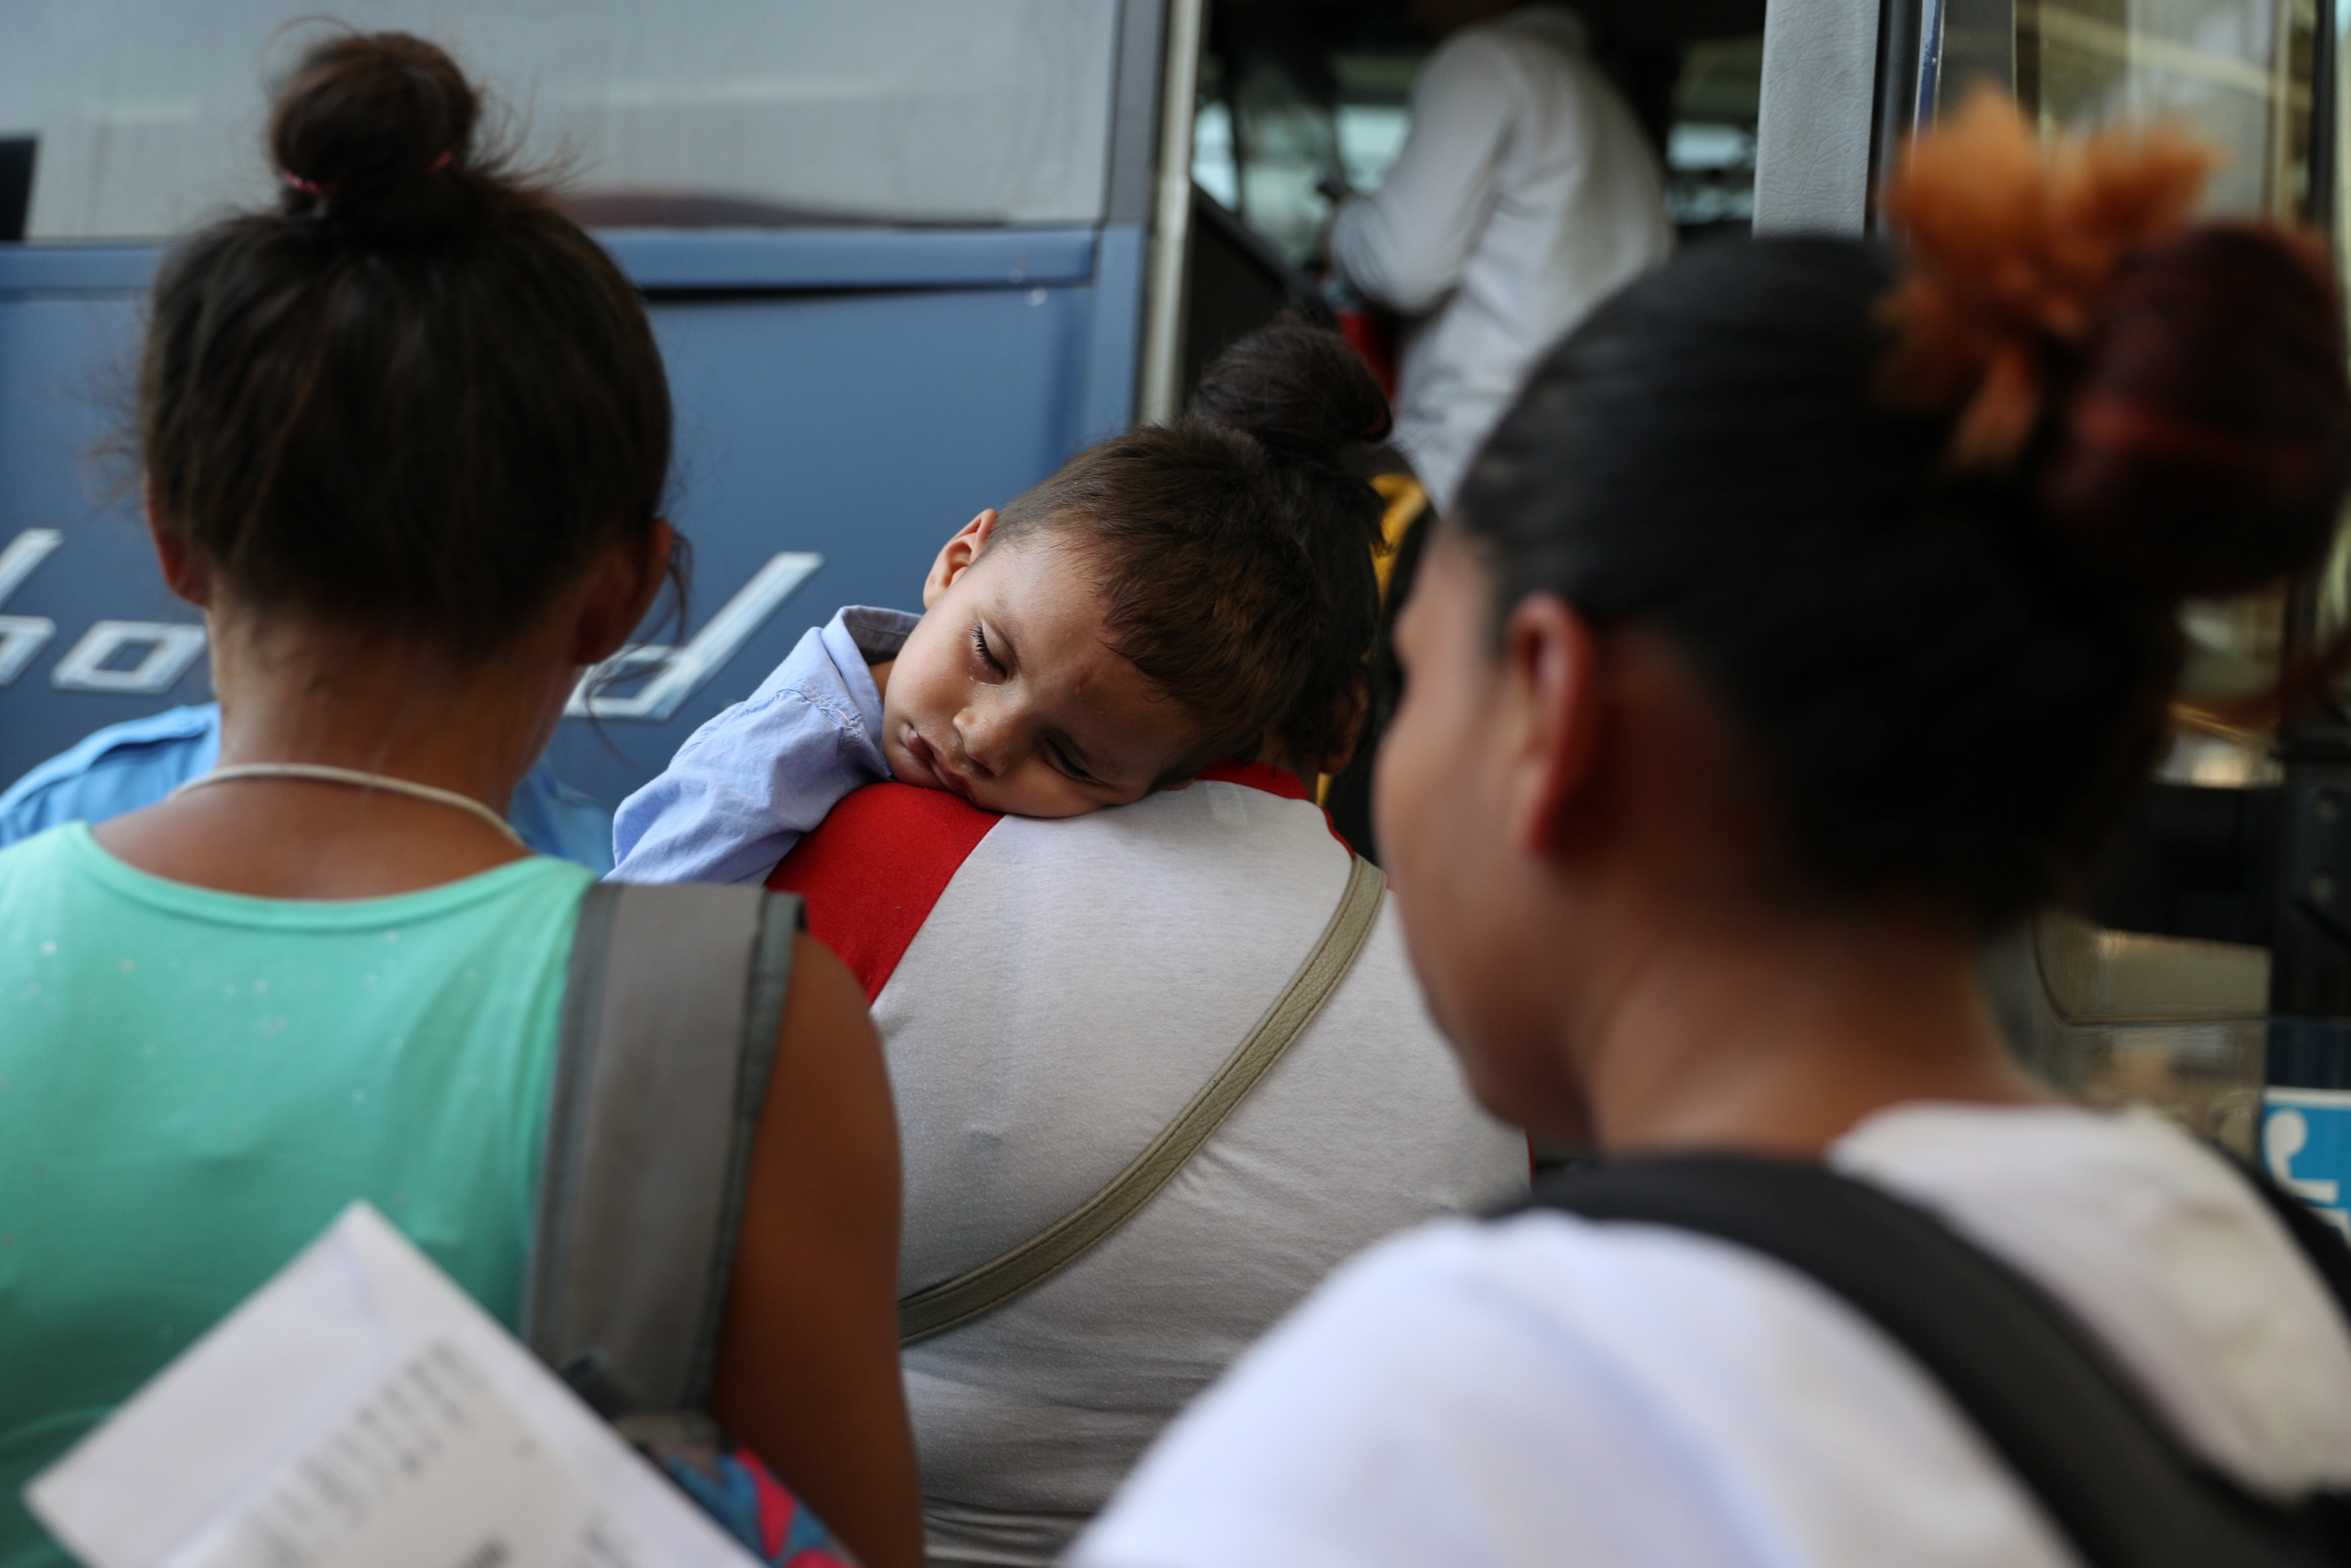 Undocumented immigrants recently released from detention prepare to depart a bus depot for cities around the country in McAllen, Texas, U.S., July 18, 2018. Picture taken July 18, 2018. REUTERS/Loren Elli